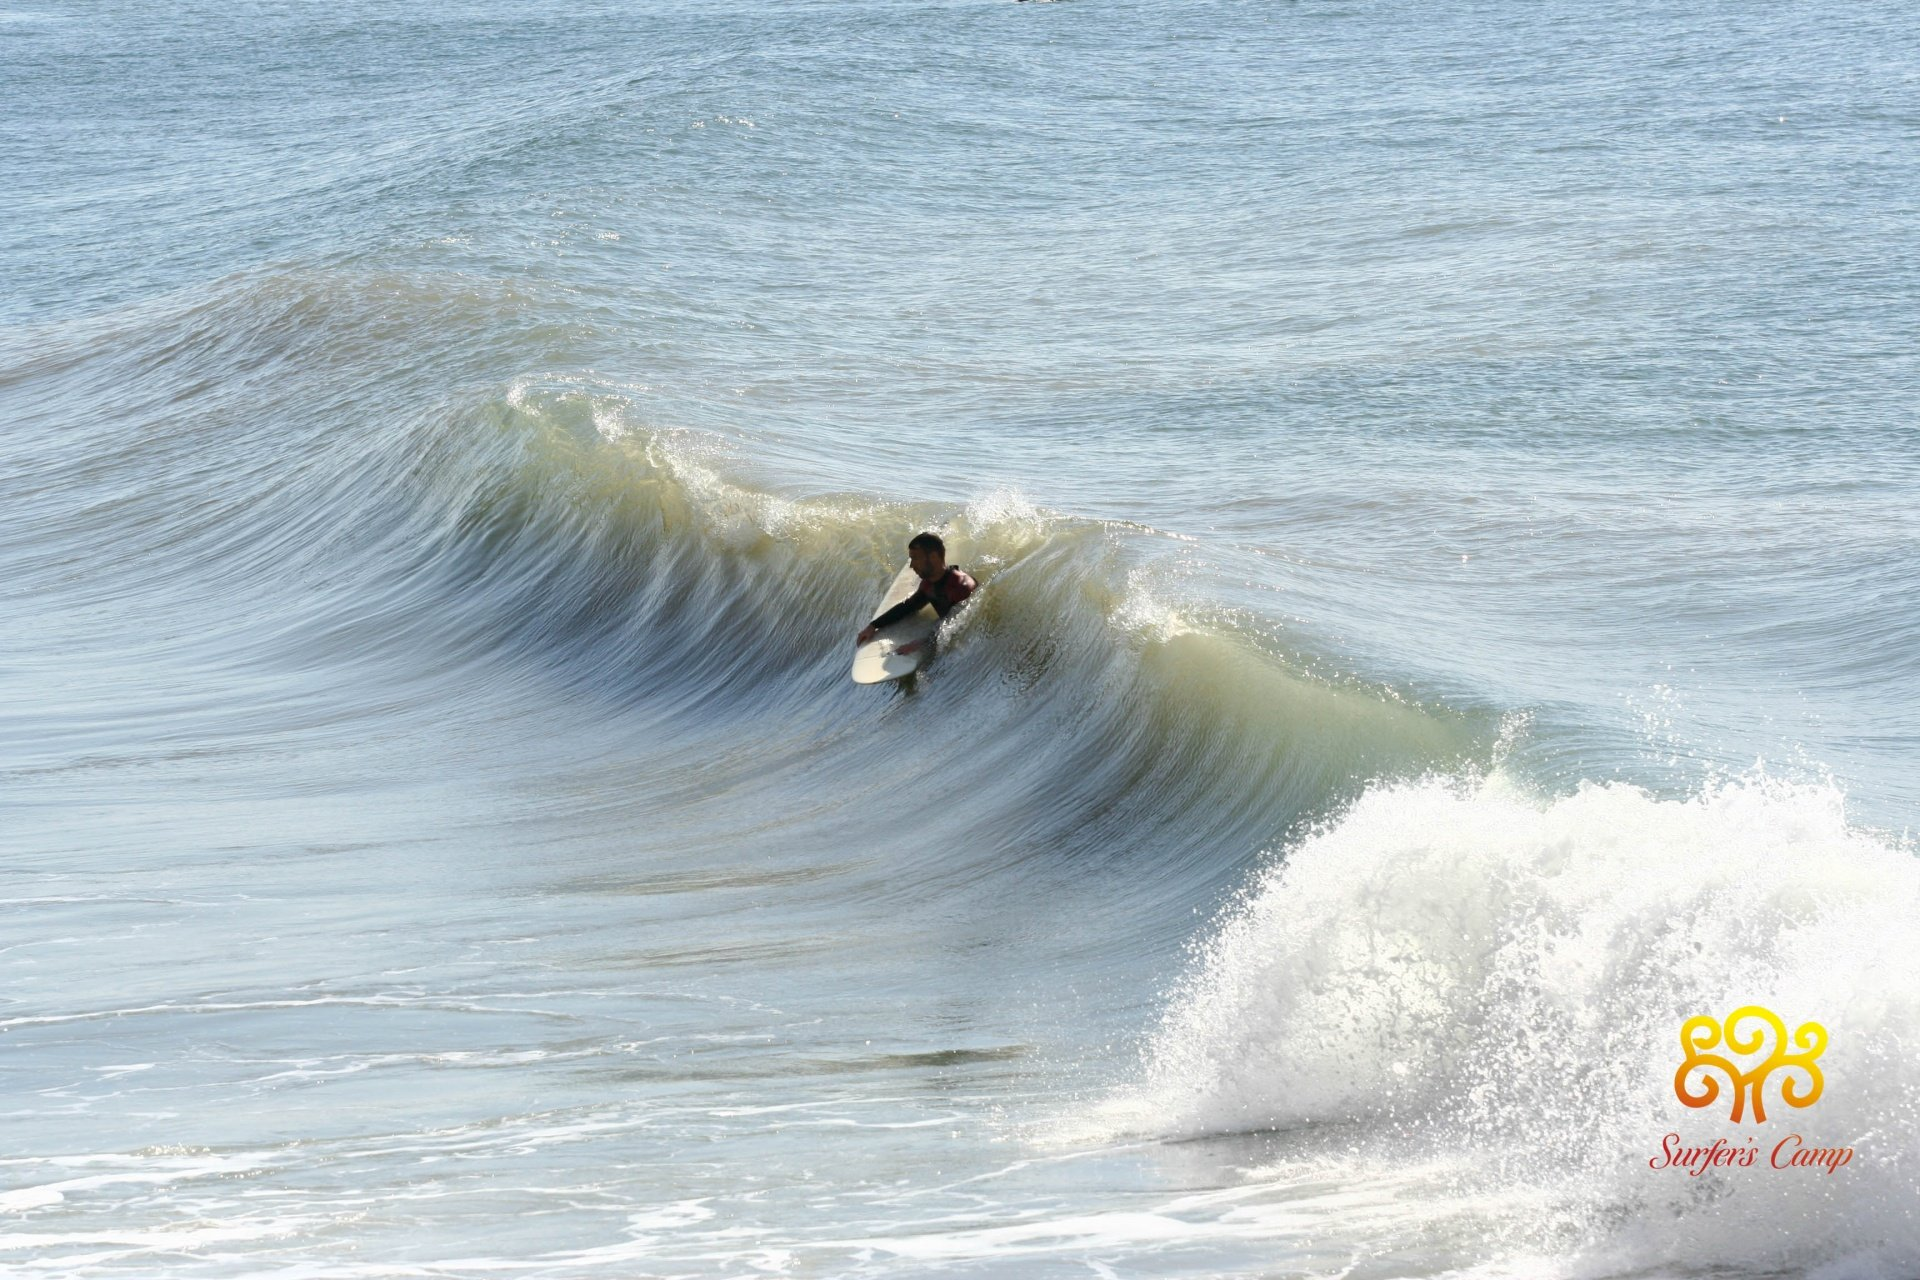 Surfers Camp's photo of Esposende